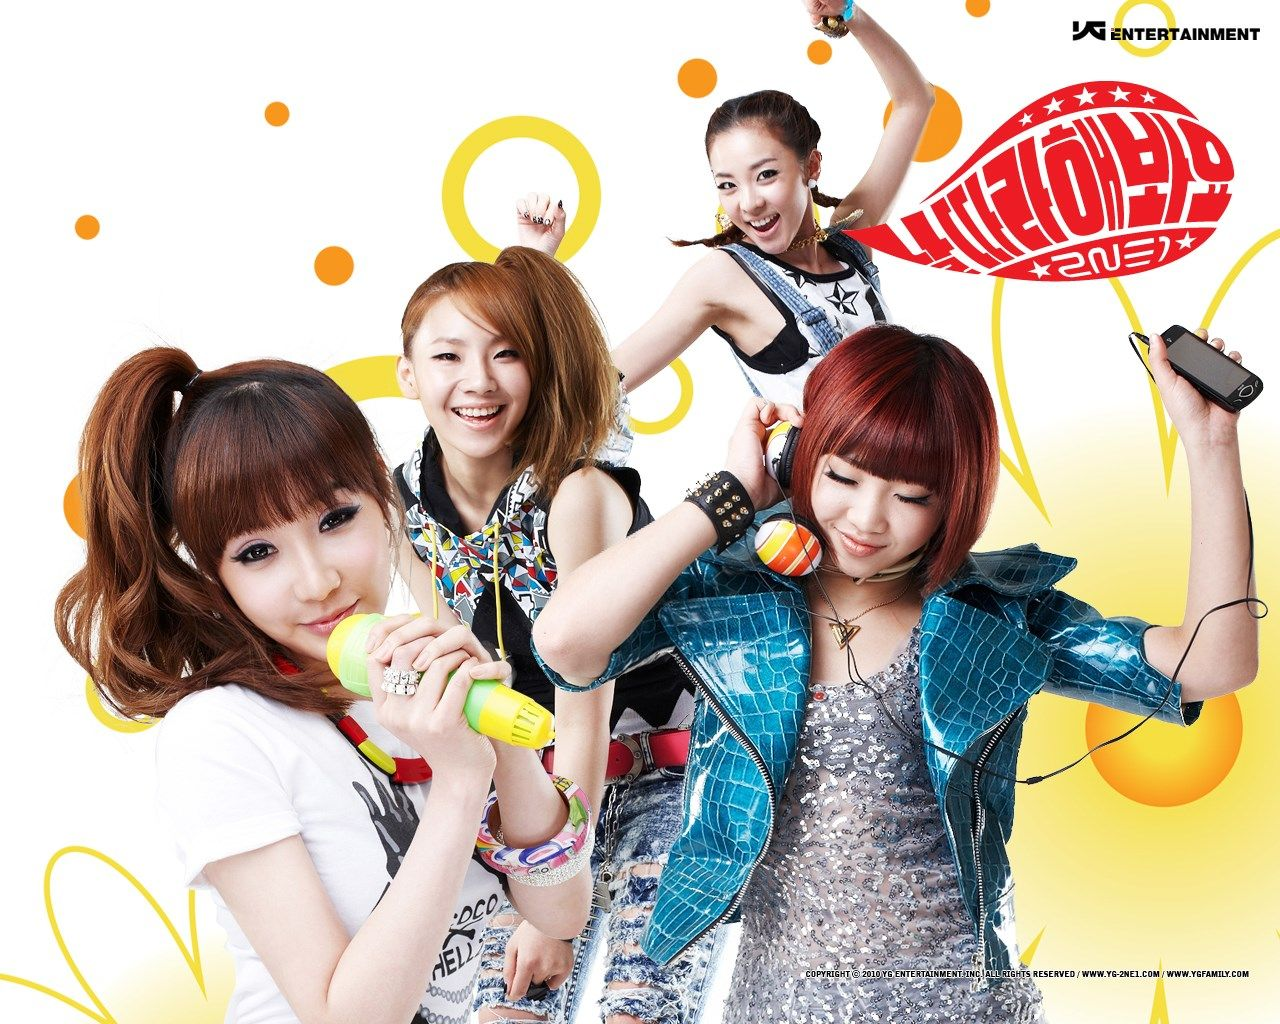 2ne1 : Full HD Pctures   Kpop backgrounds, 2ne1, Full hd pctures